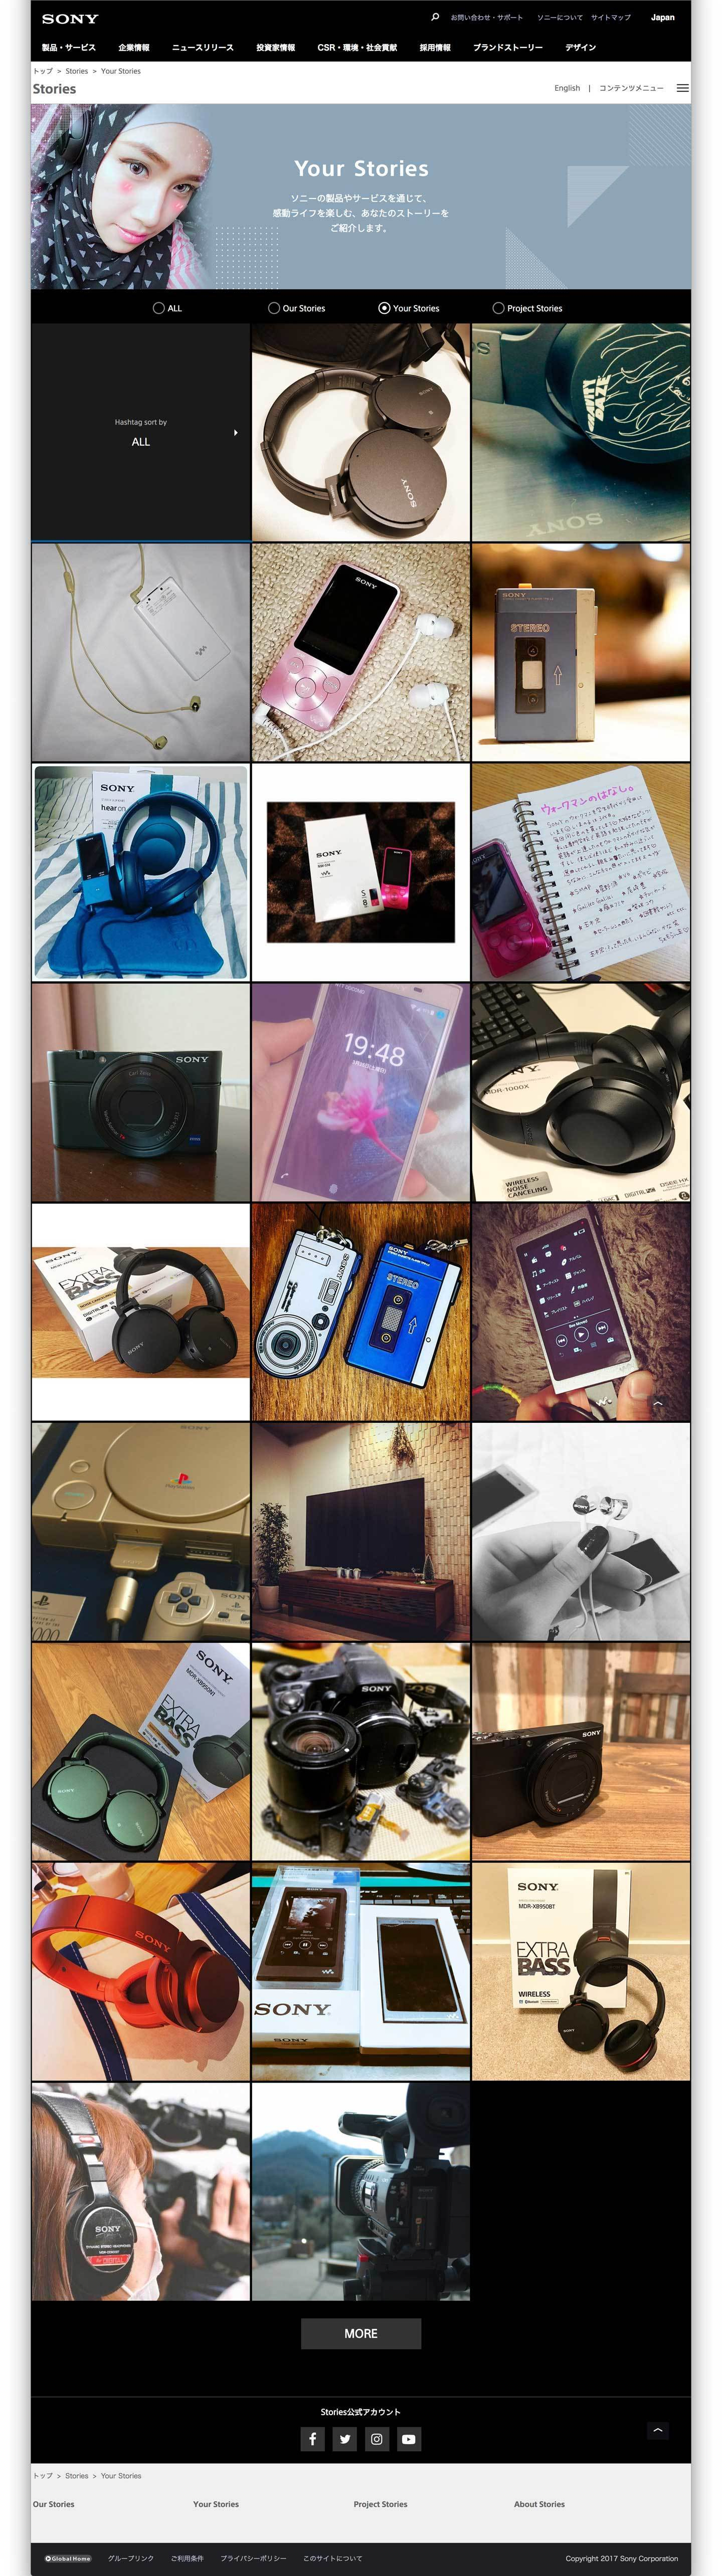 sony japan stories